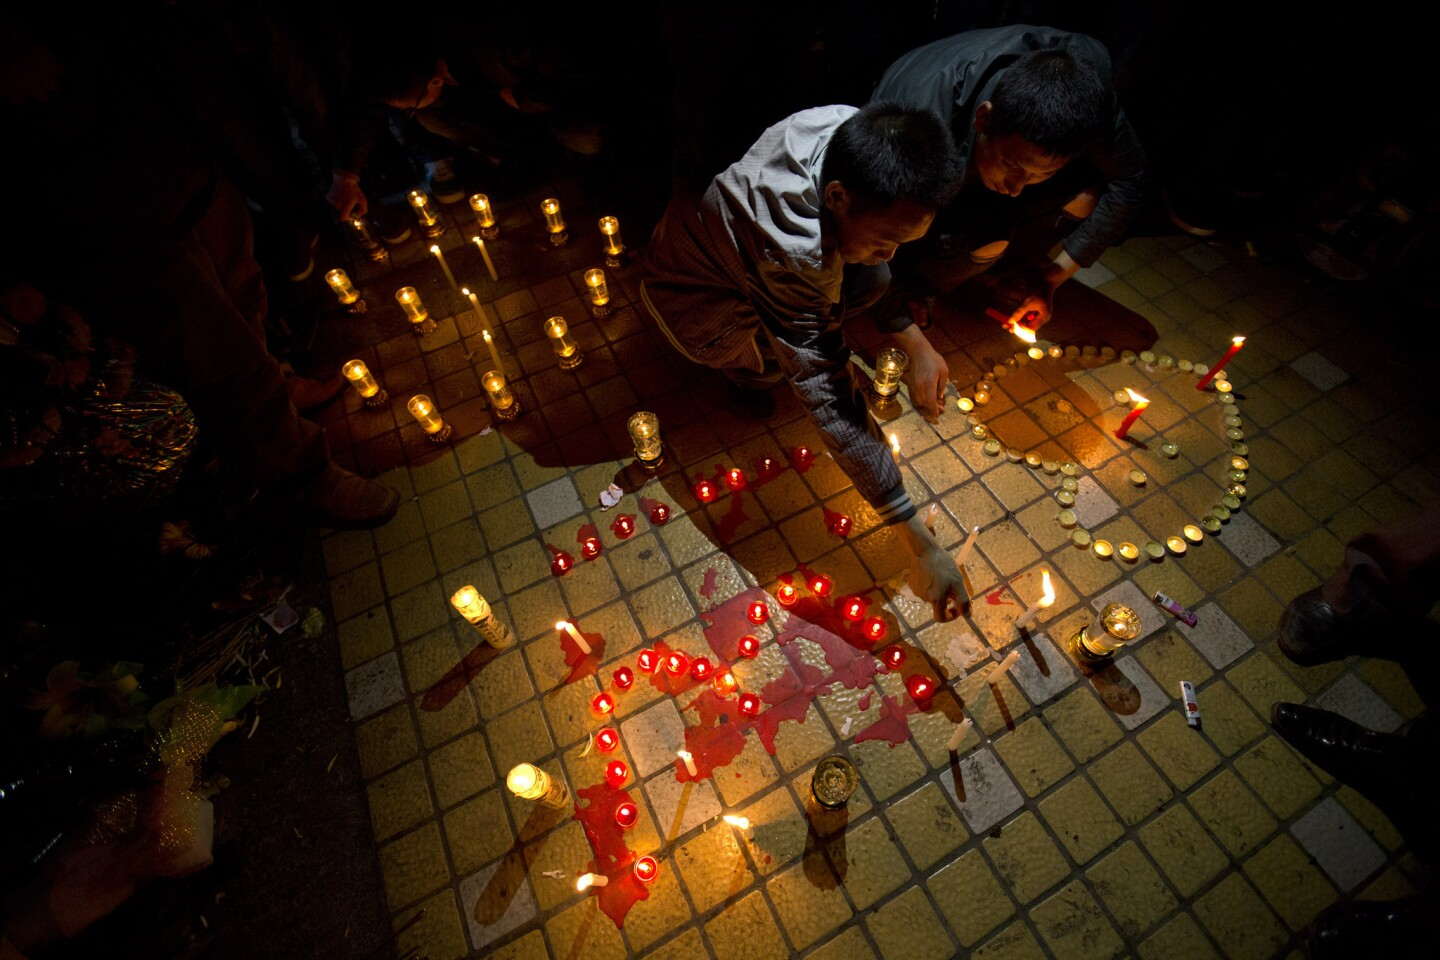 Two men light candles before a group prayer for the victims on a square outside the Kunming Railway Station where assailants slashed scores of people with knives the night before.